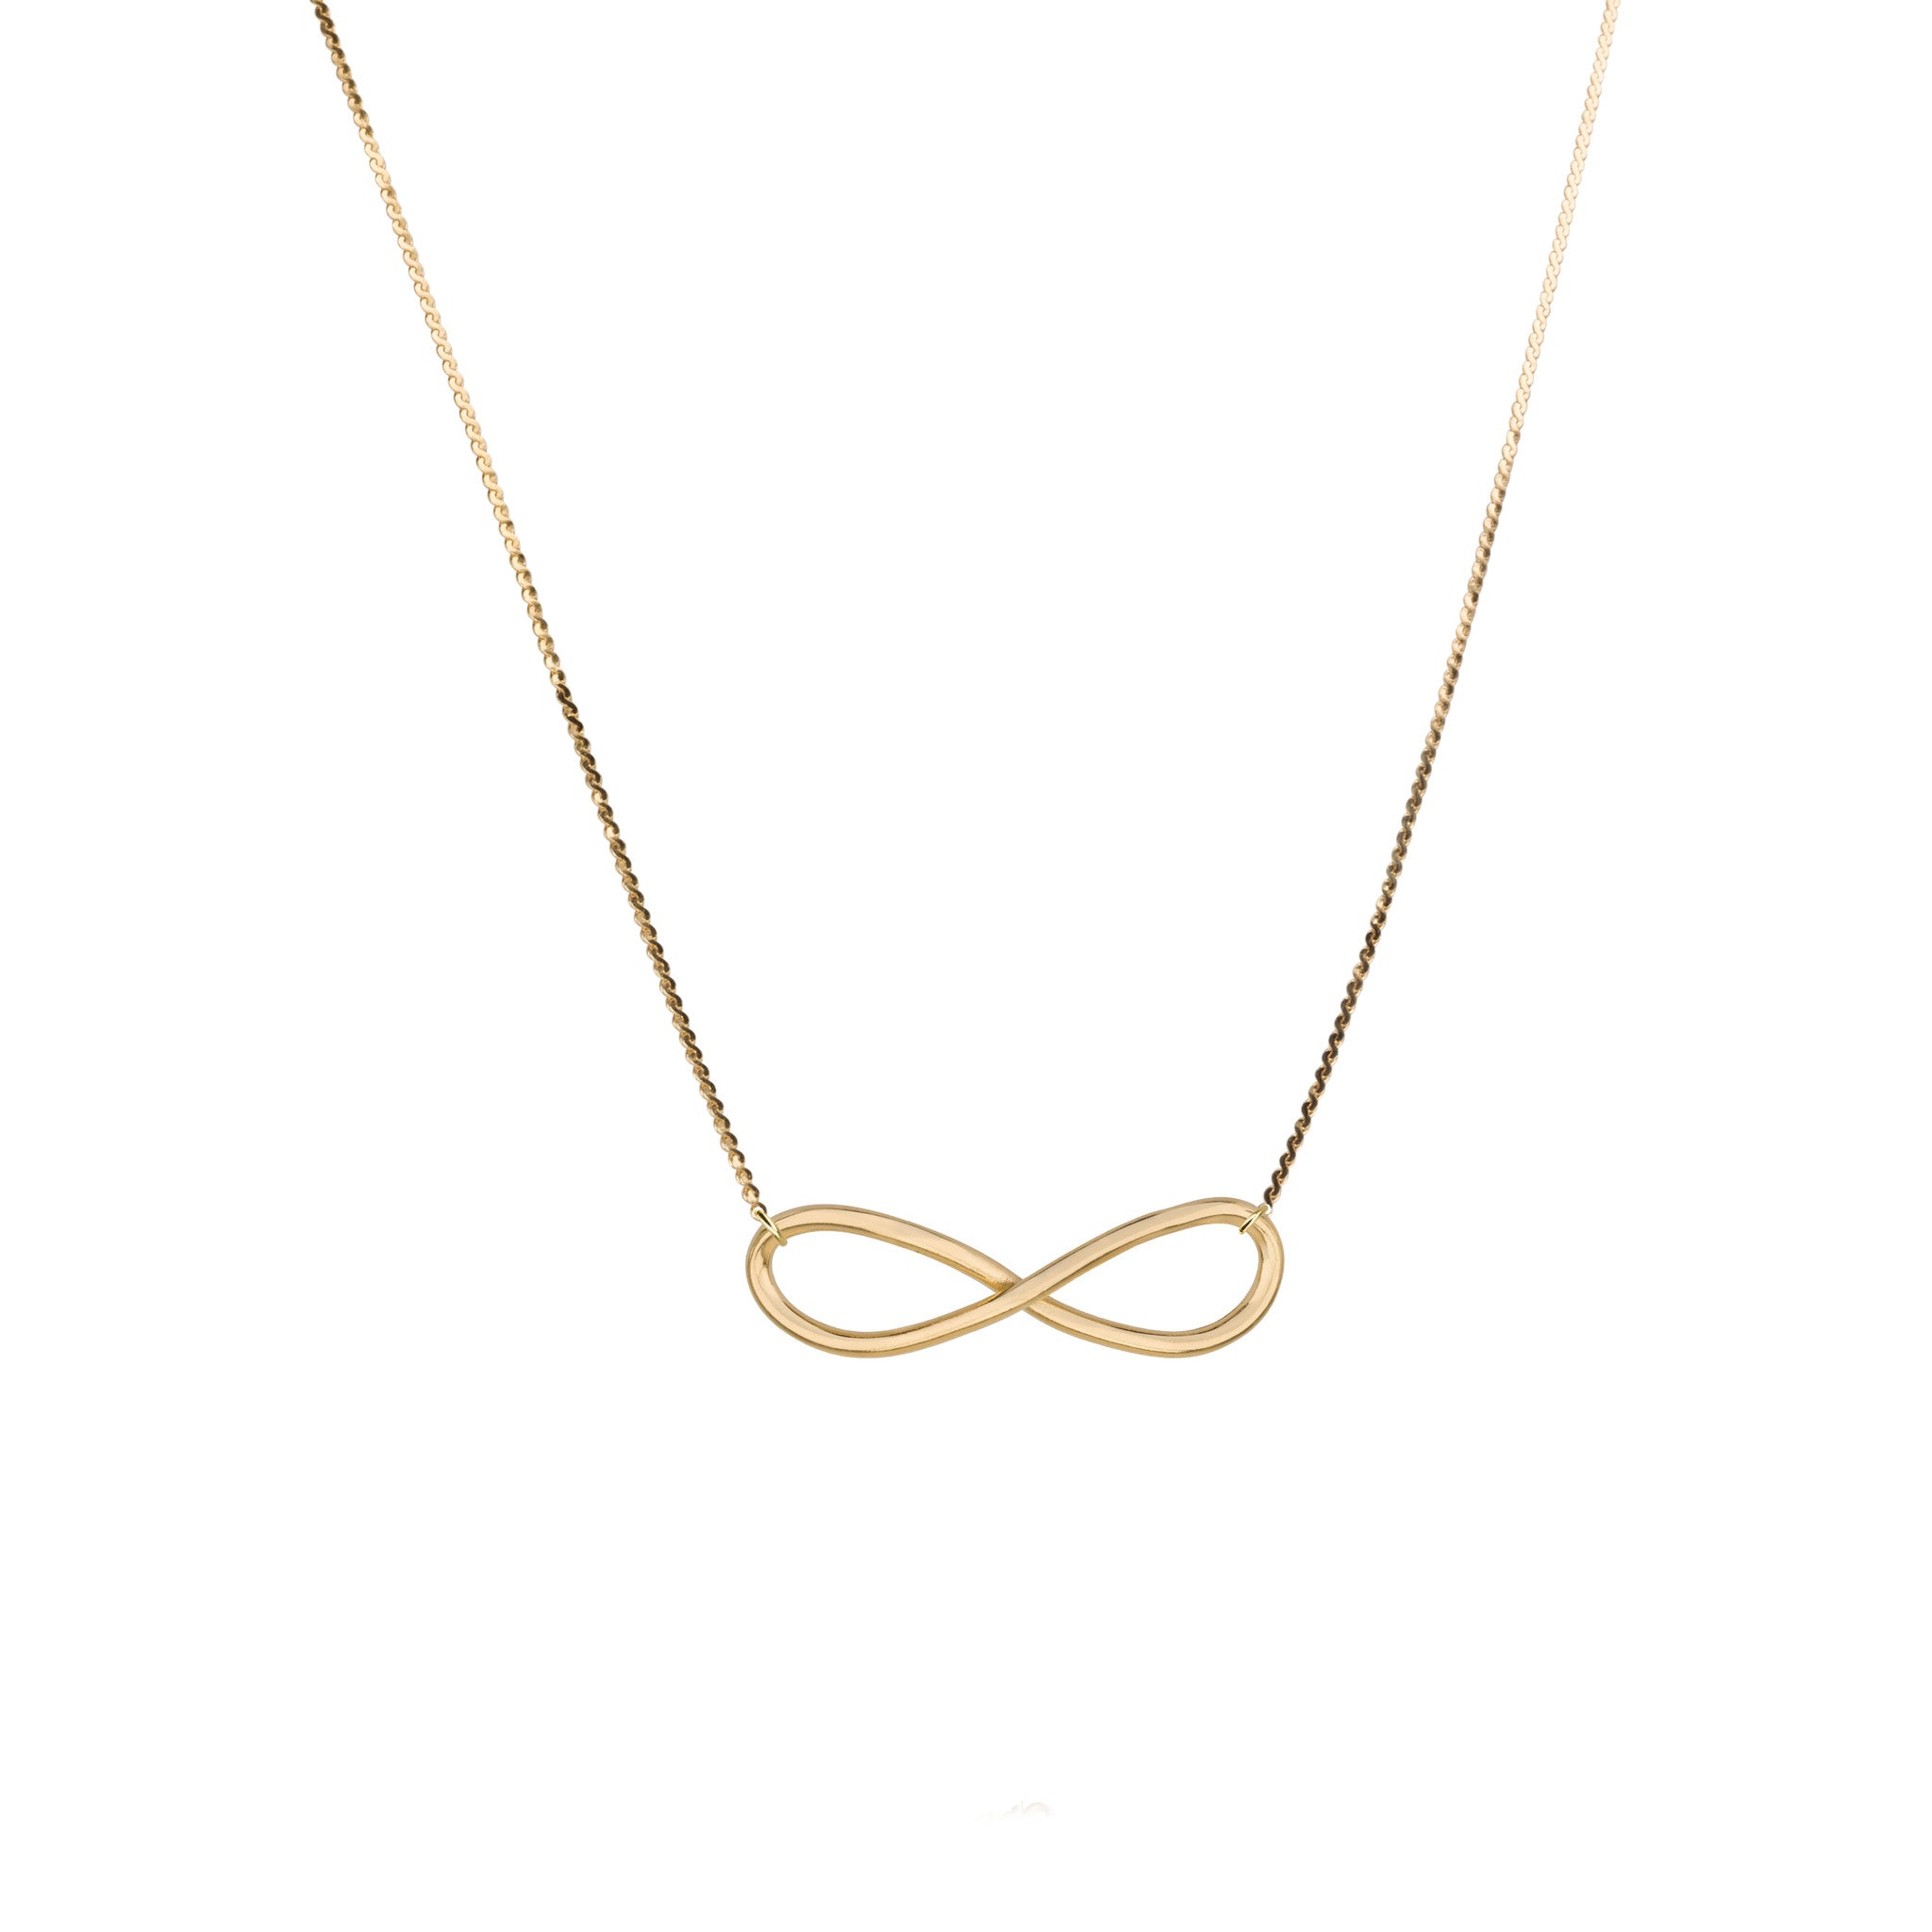 silver products necklace infinity sign beauty endless dsf jewels baguette collections